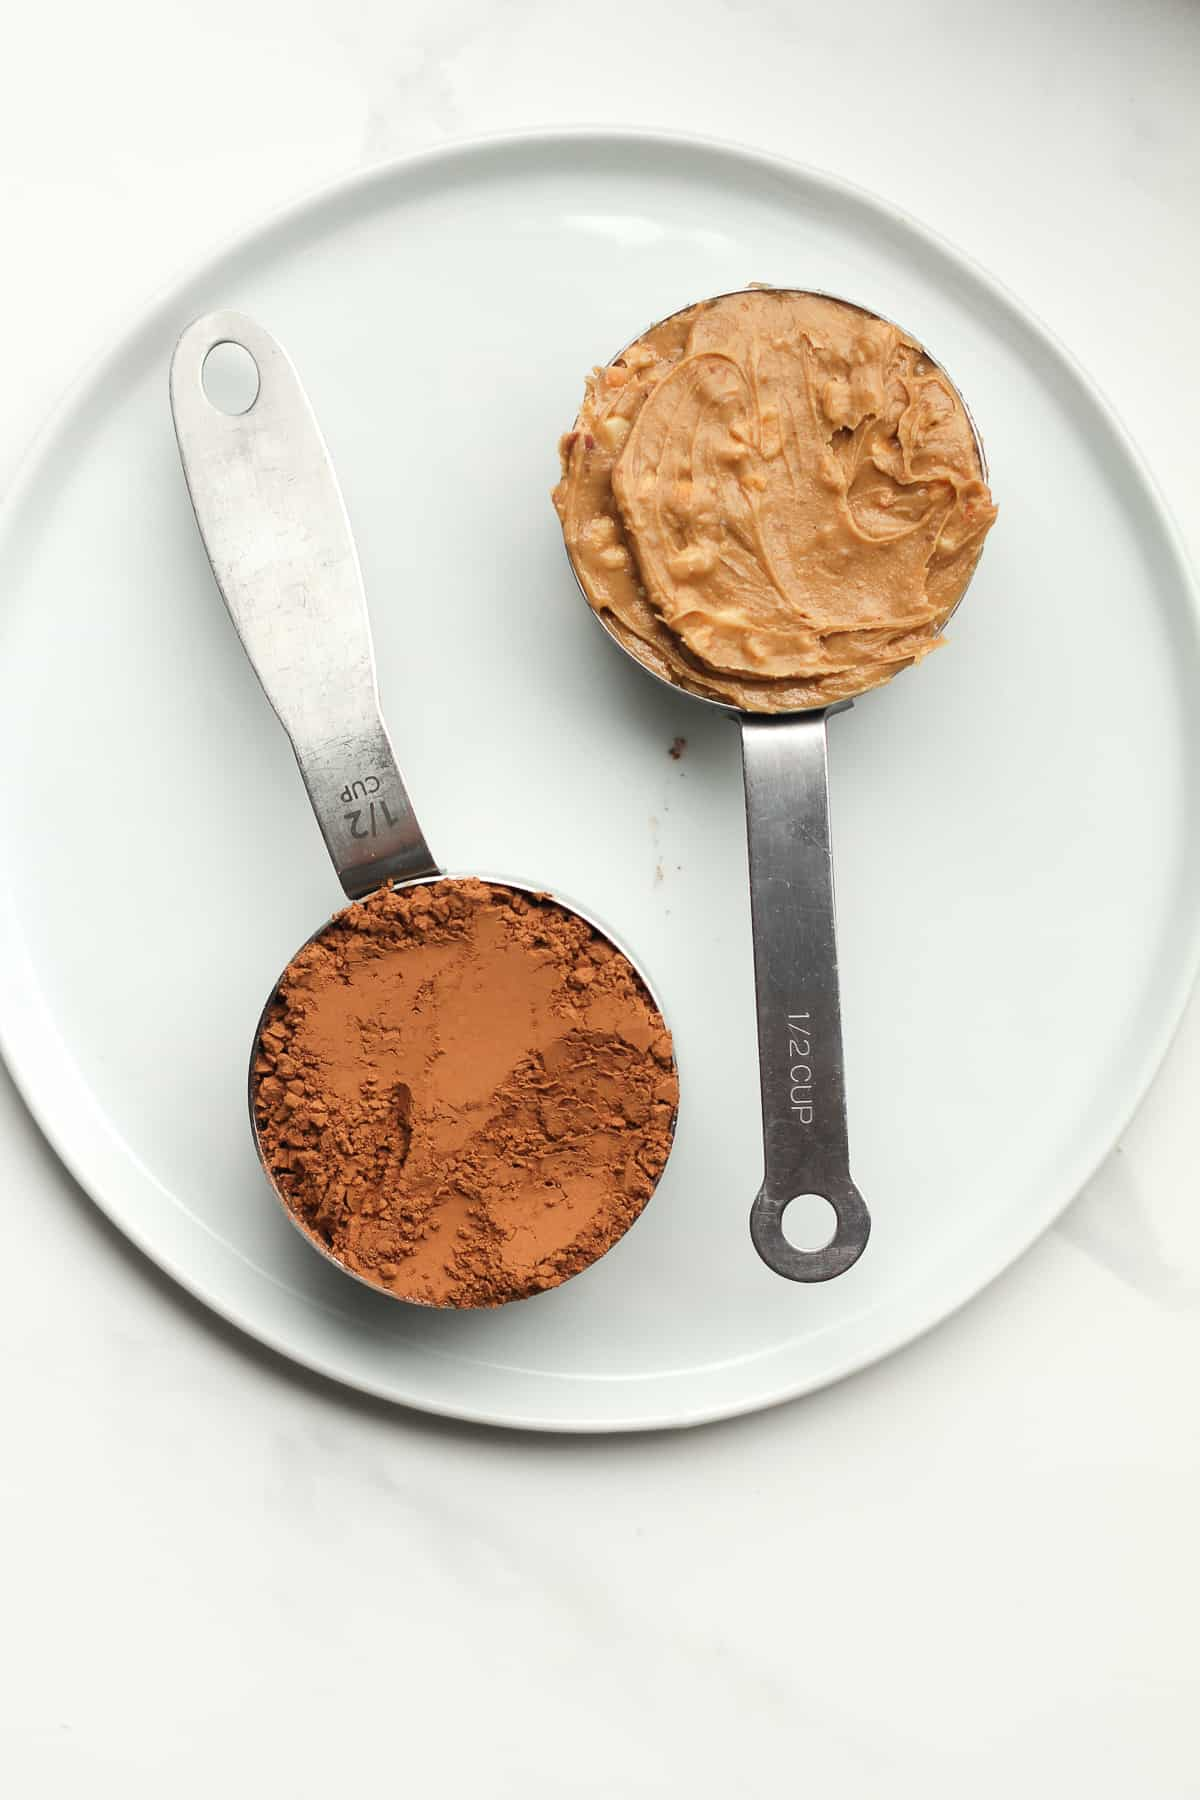 Two 1/2 cups of peanut butter and cocoa powder.